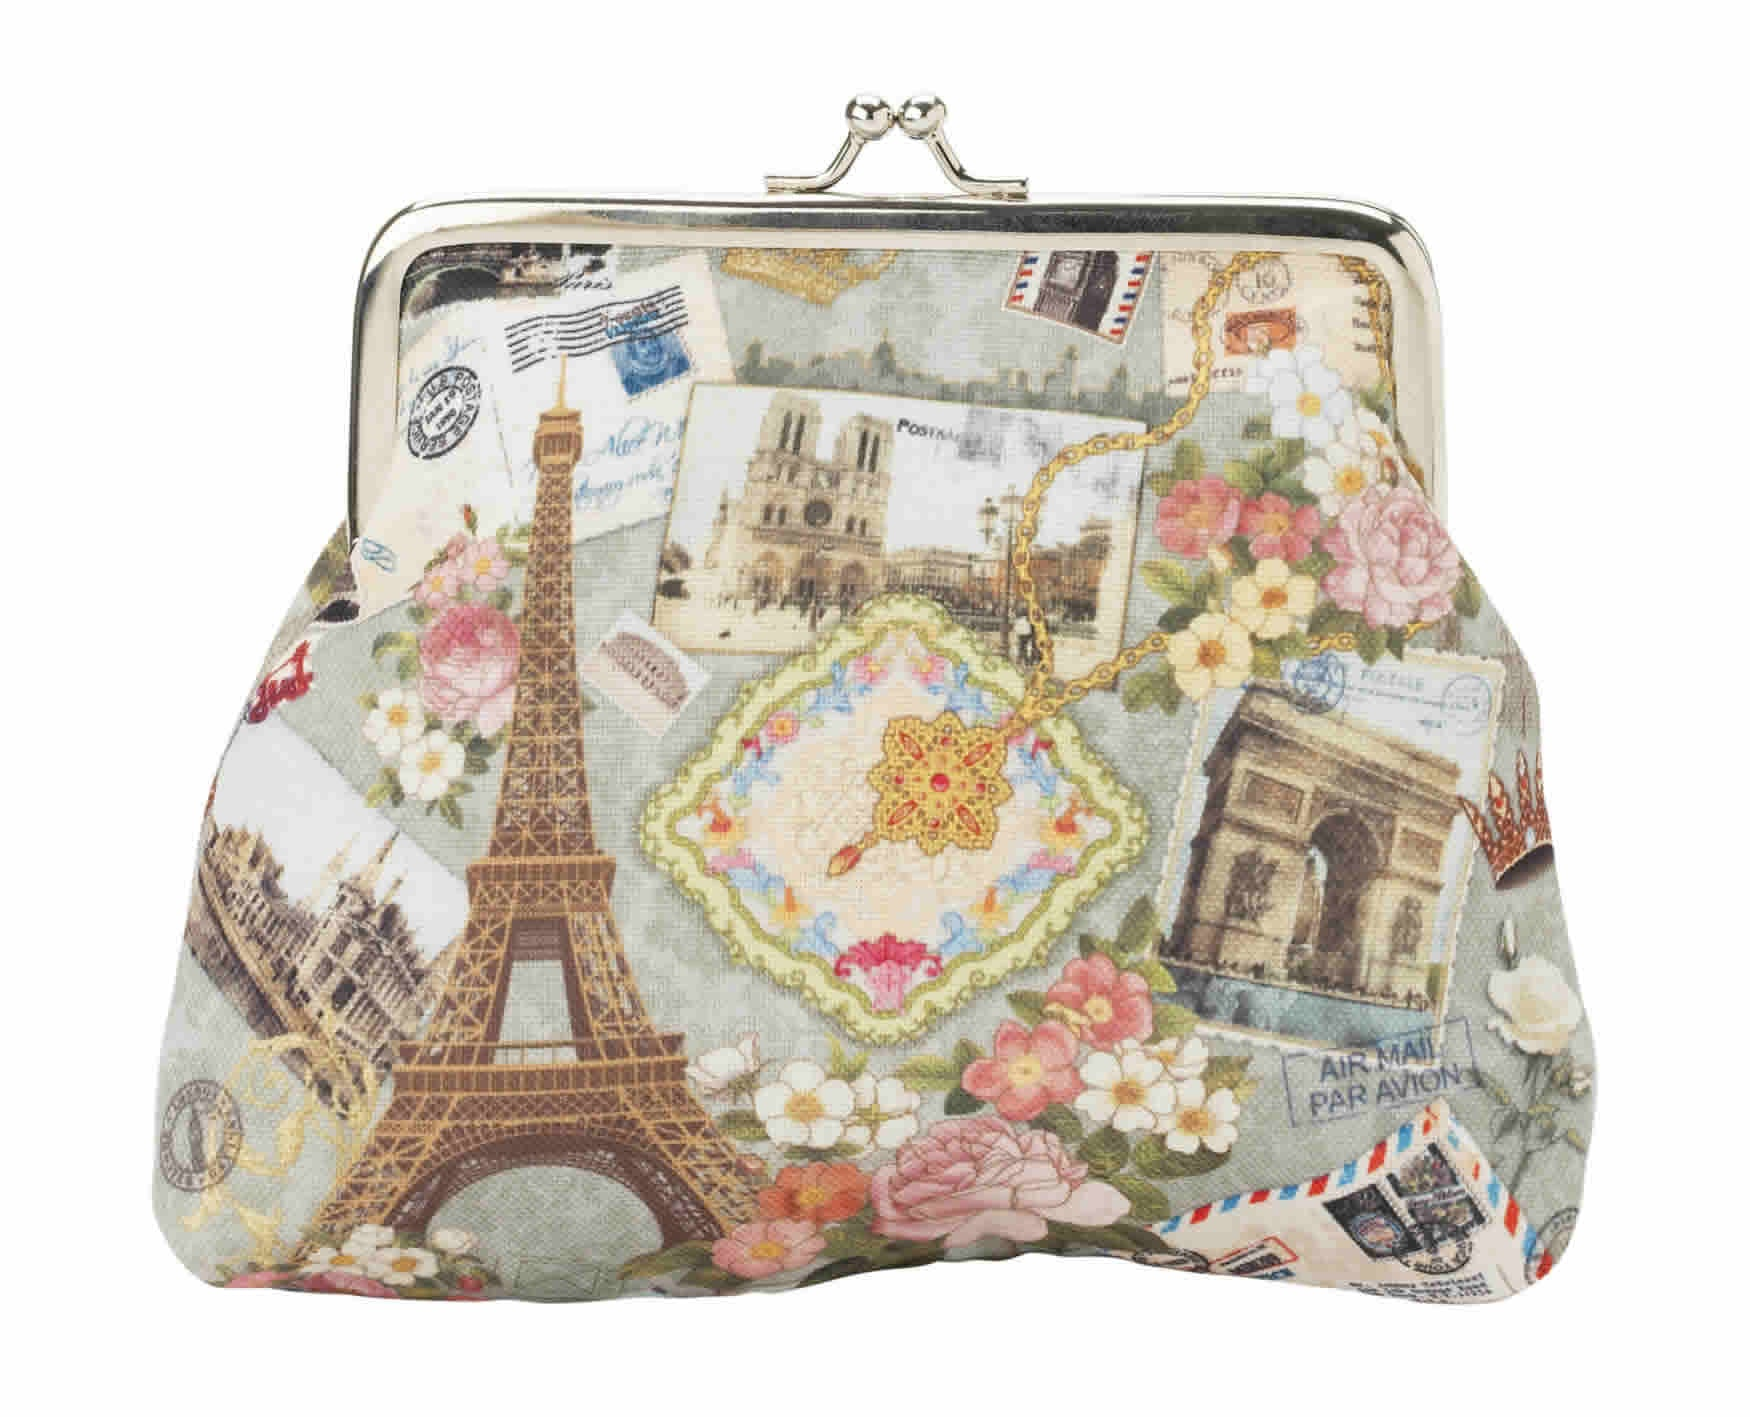 Lisbeth Dahl Mint Paris Purse